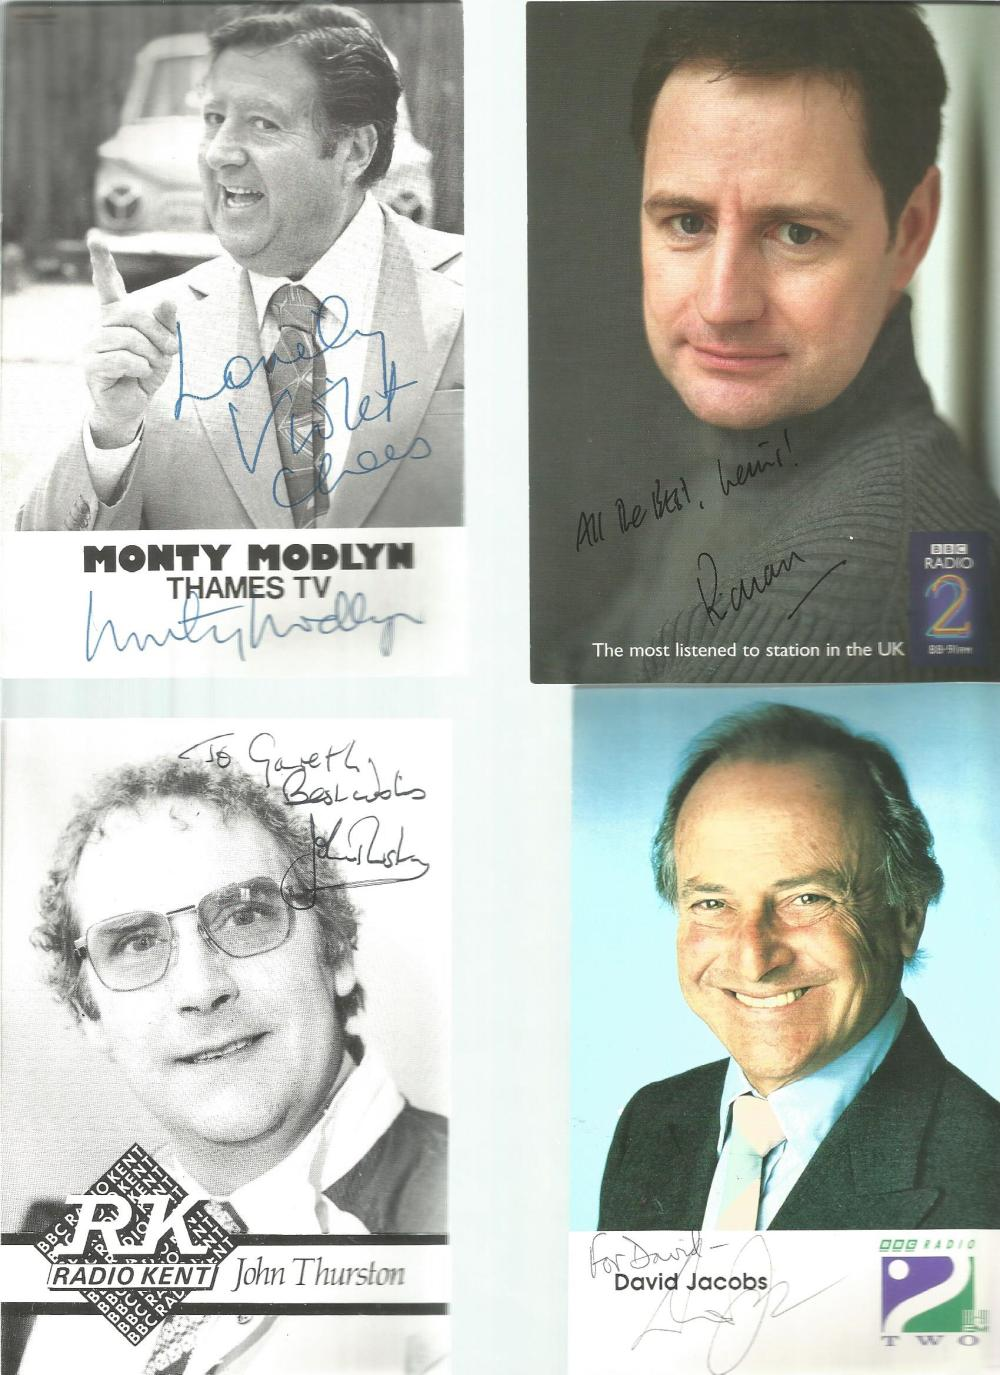 TV signed collection. 13 items mainly 6x4 photos. Some of names included are Monty Modlyn, John